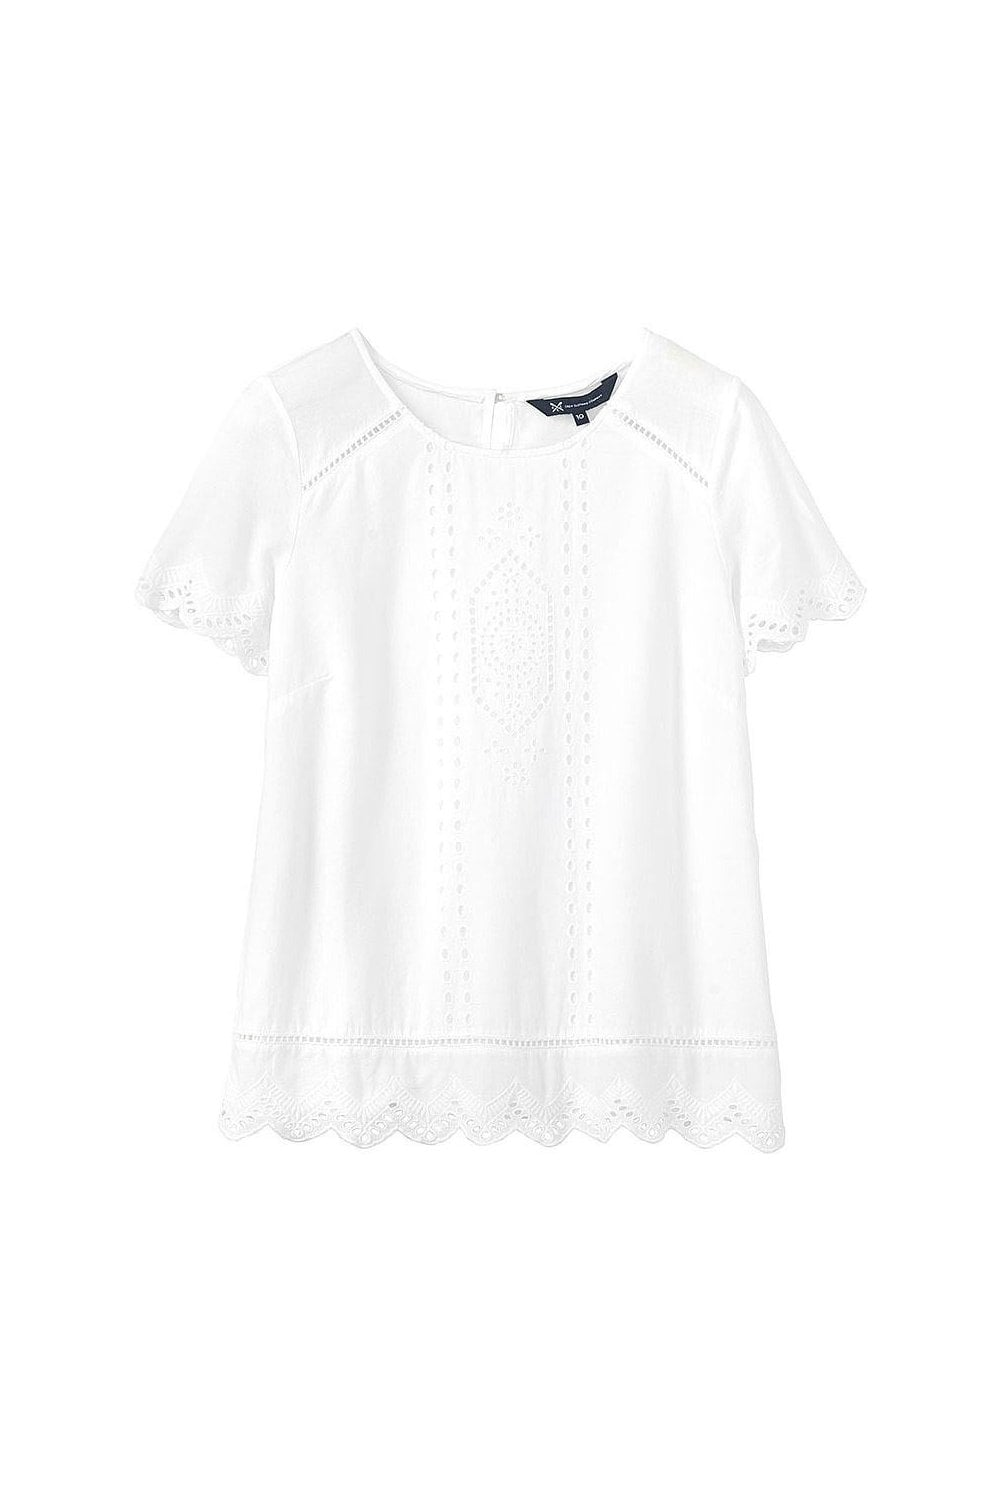 908294b7ce5e Crew Clothing Womens Broderie Front Top - Optic White - T-shirts ...